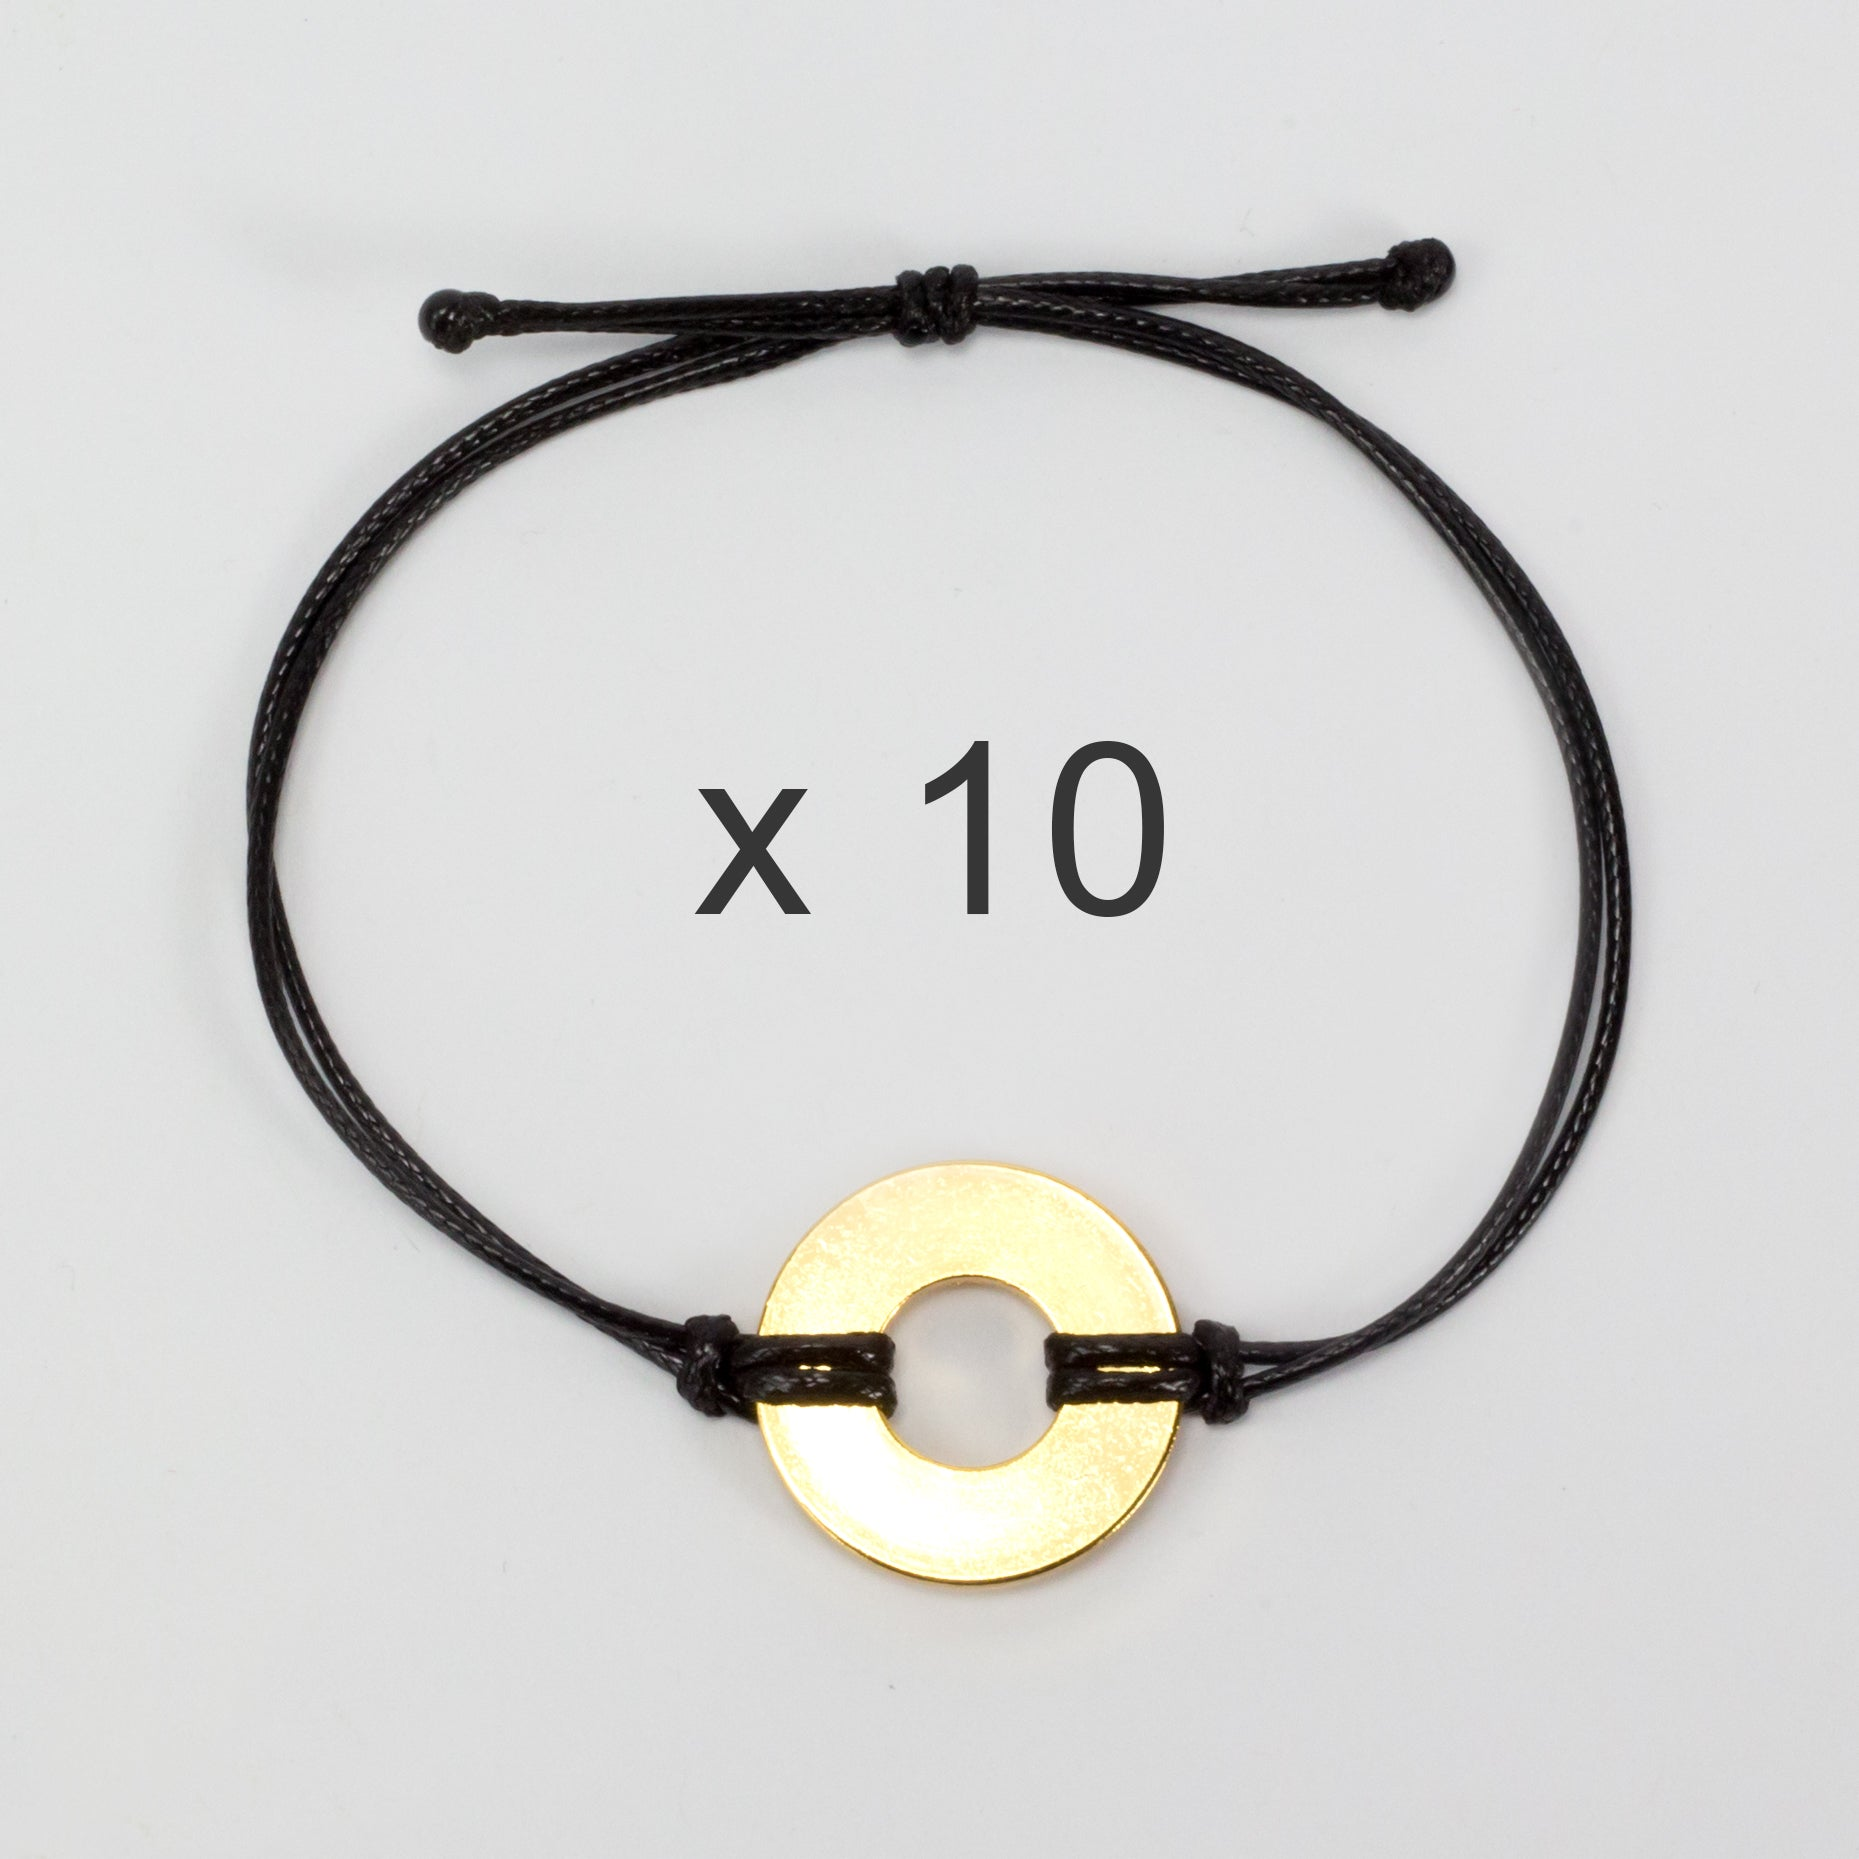 MyIntent Refill Classic Bracelets Black String set of 10 with Brass tokens